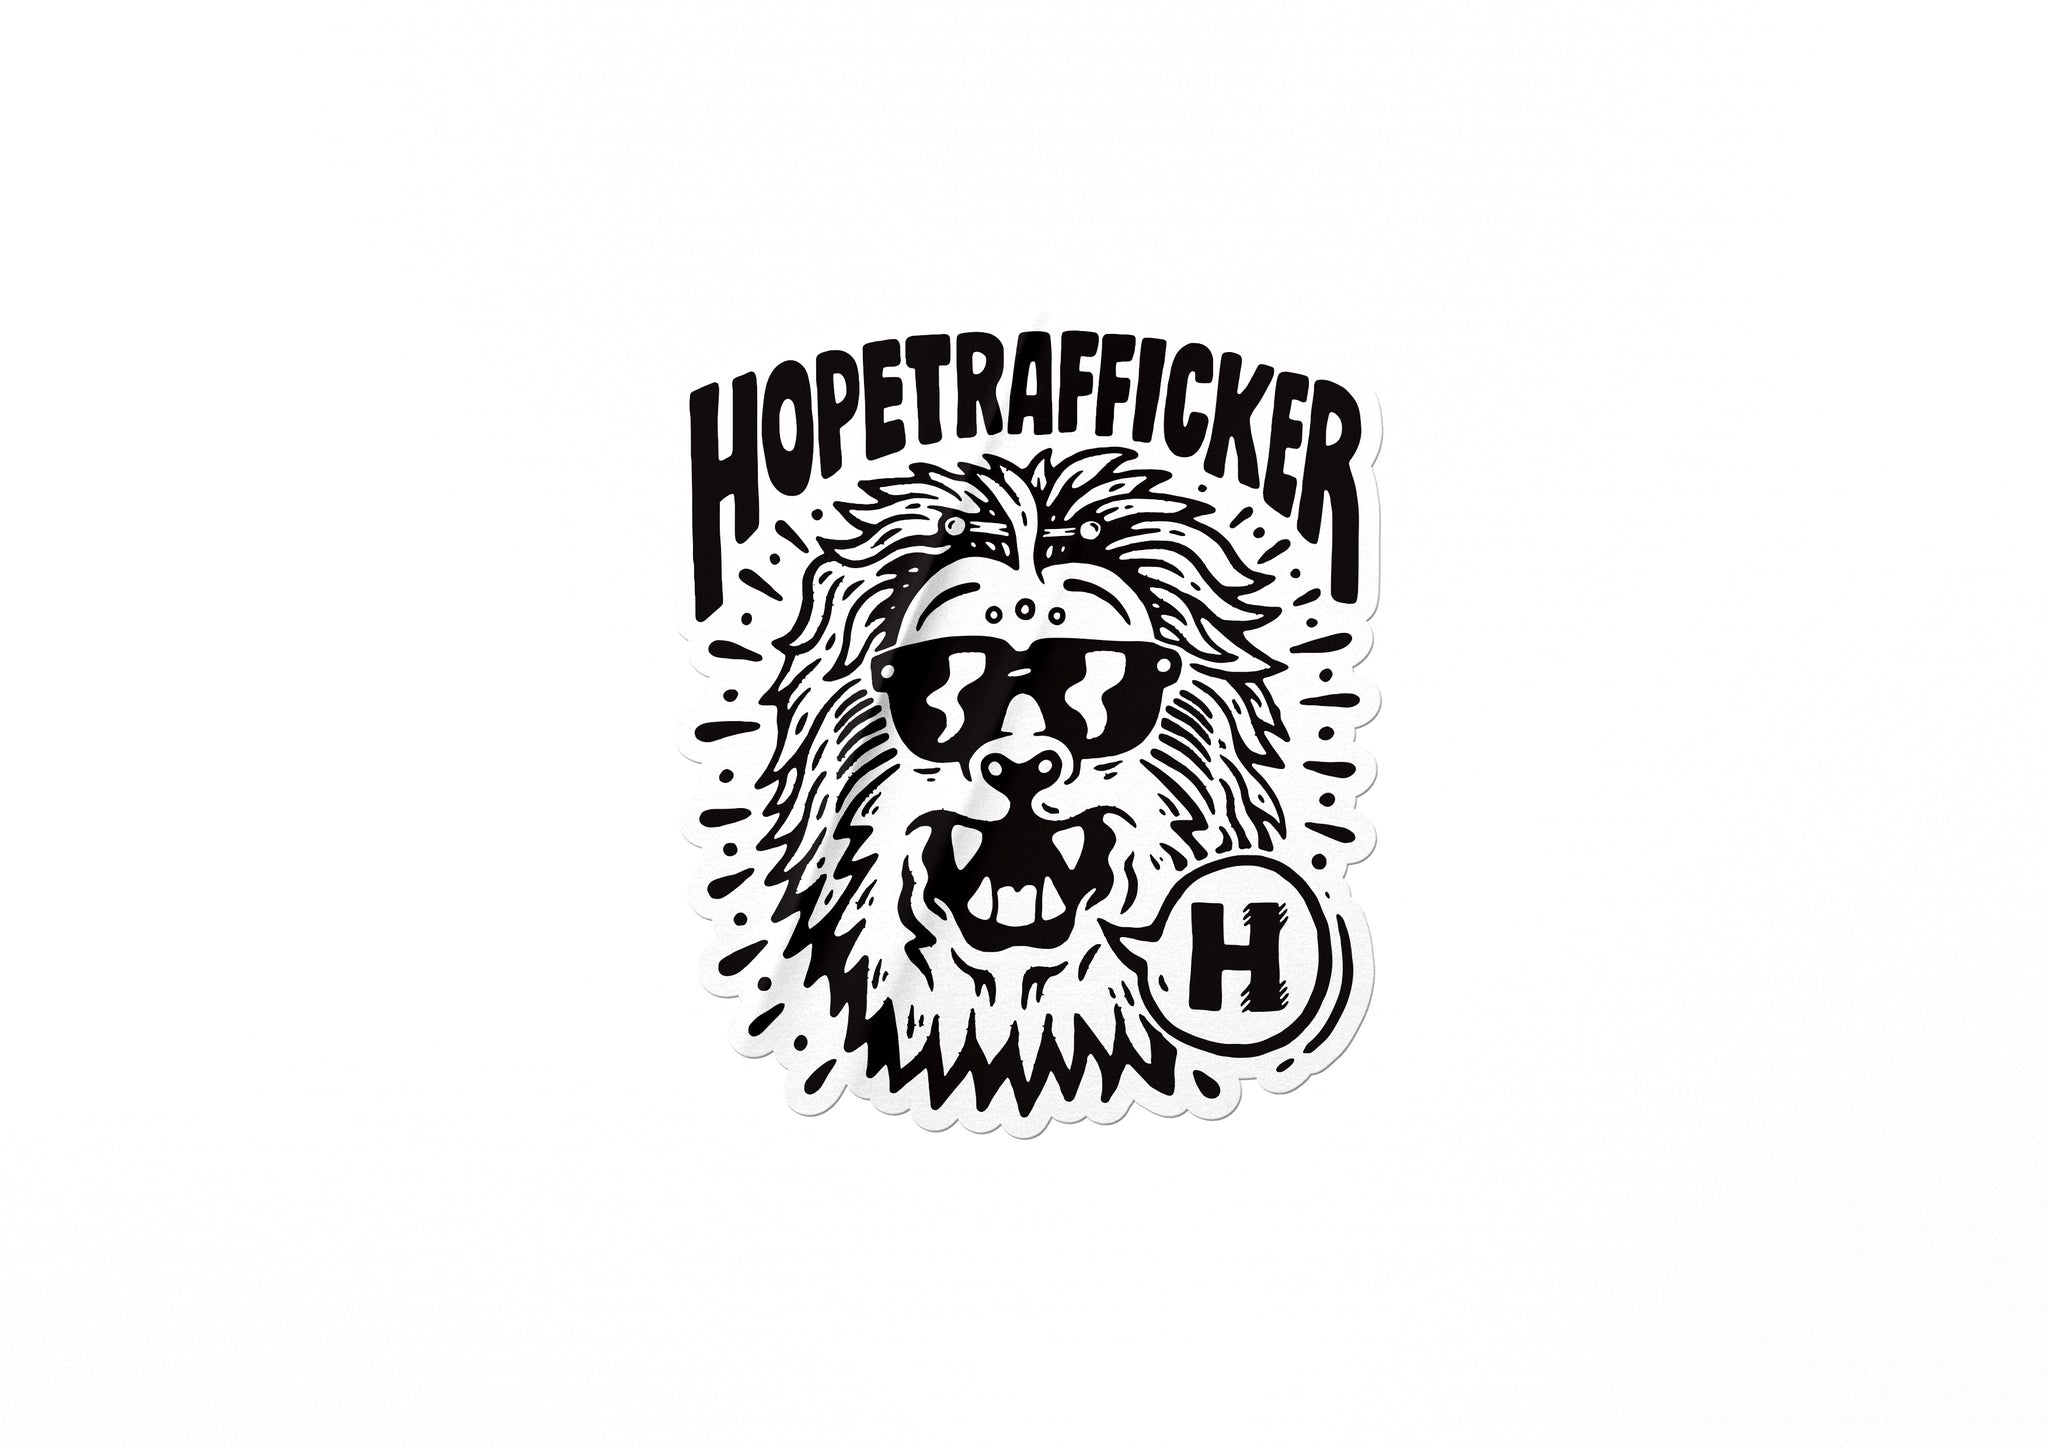 HopeTrafficker - Die cut stickers 65mmx75mm